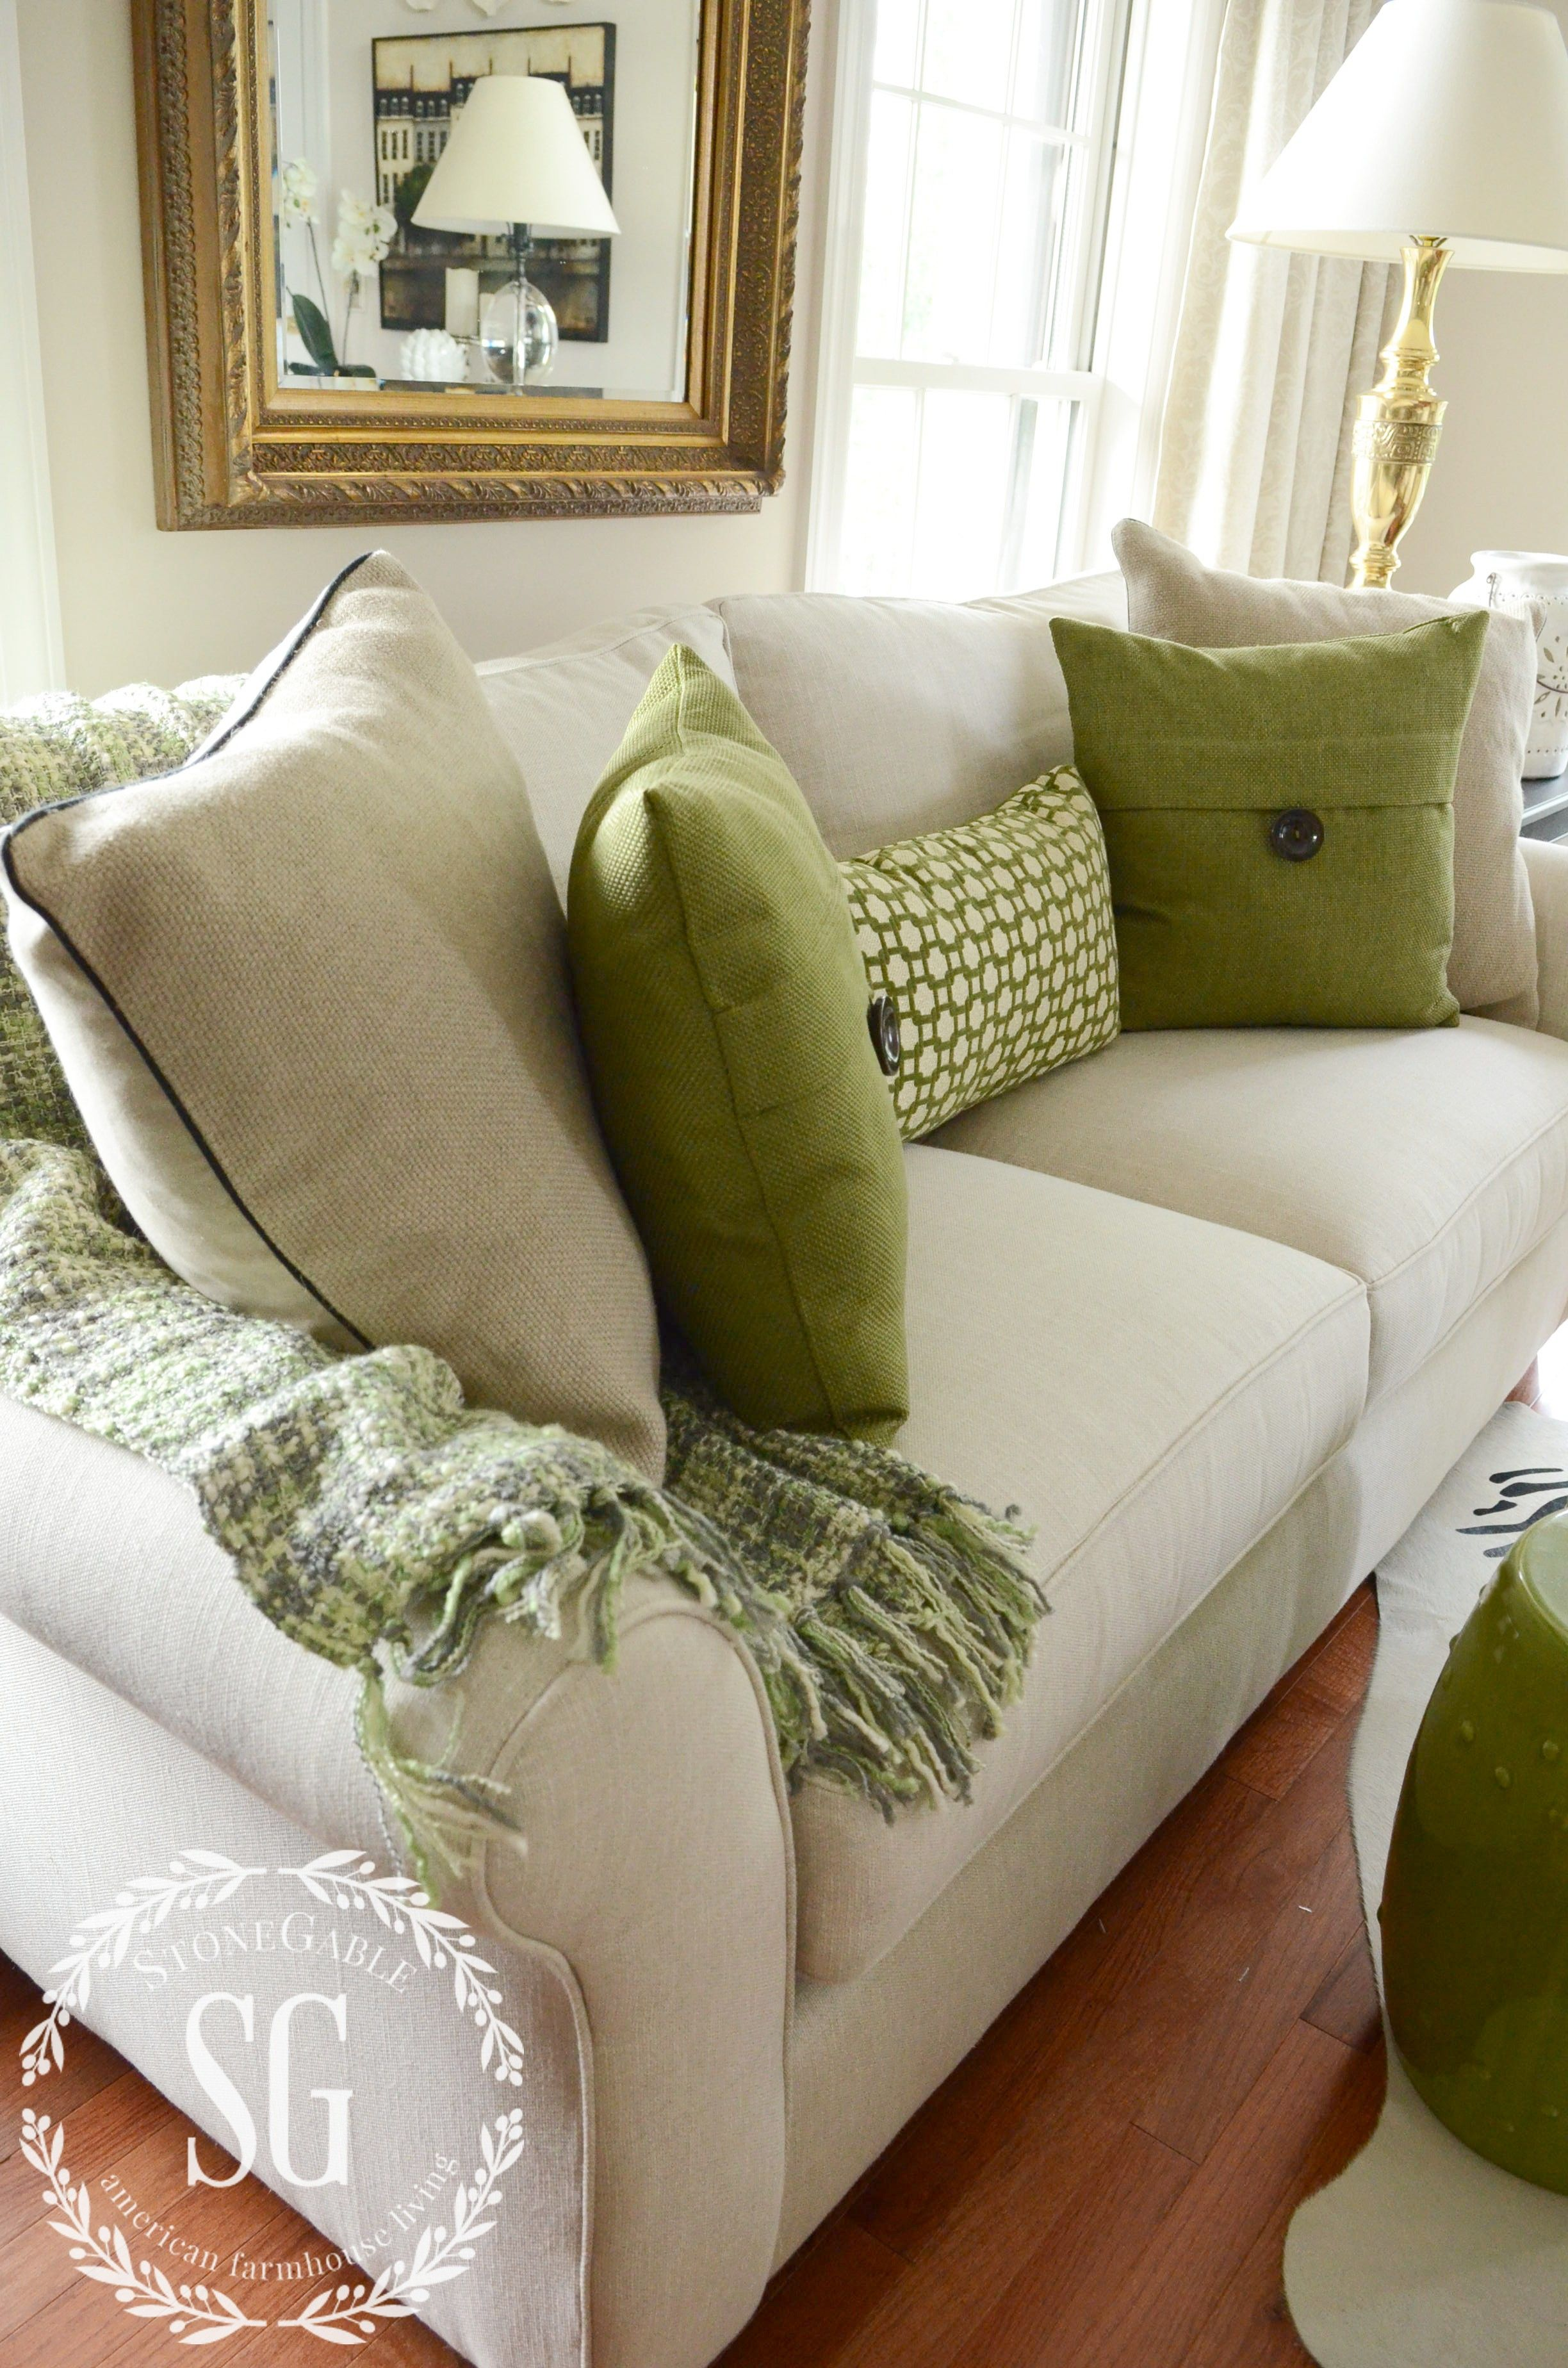 5 No Fail Tips For Arranging Pillows Living Room Green Cushions